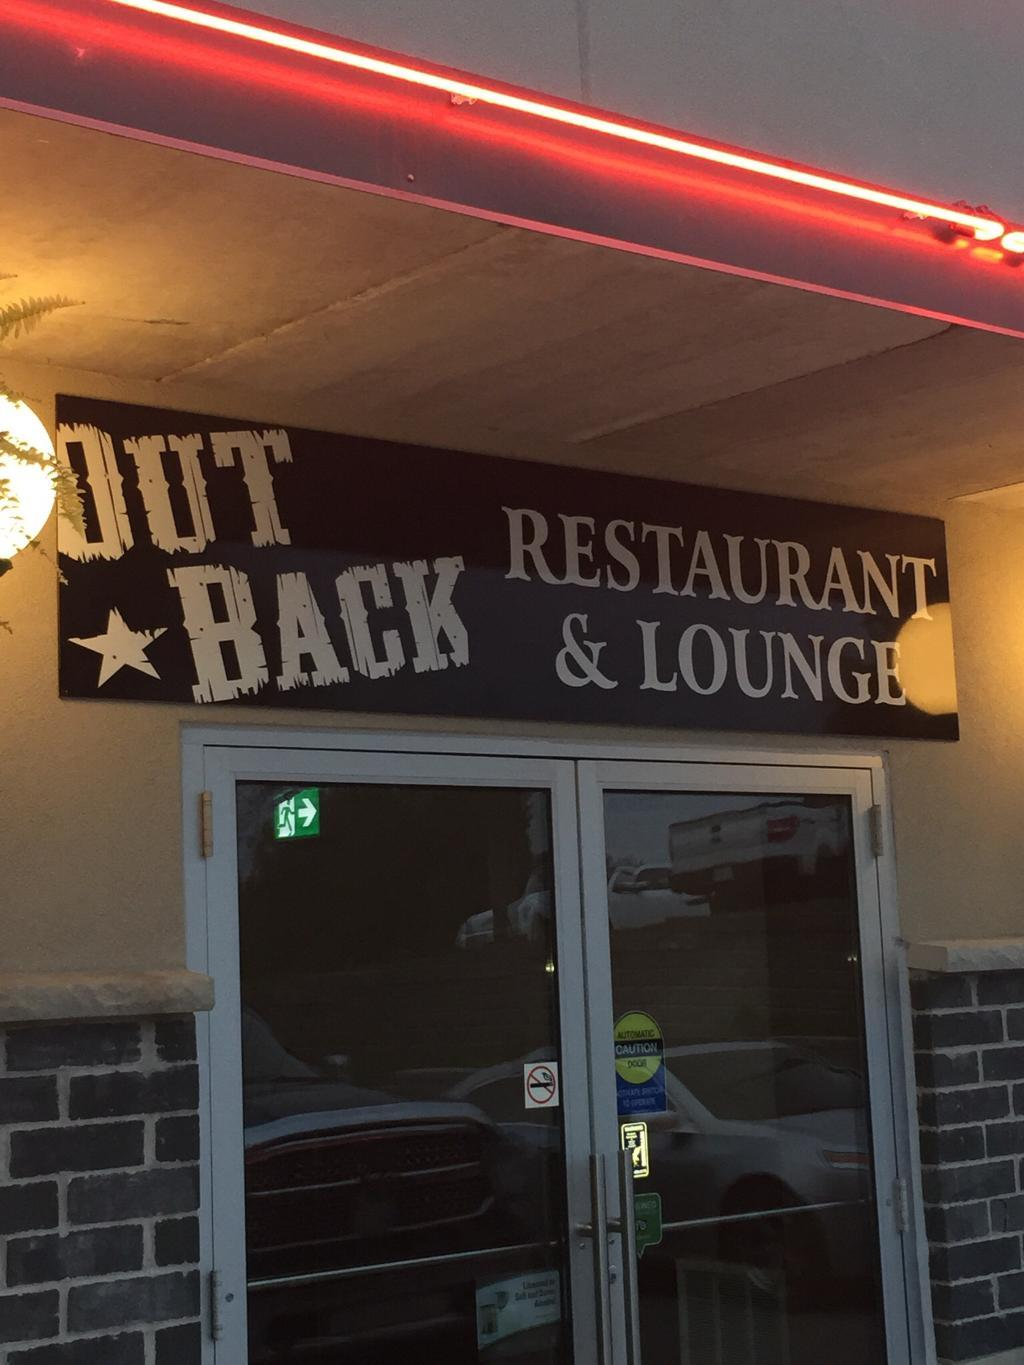 Out Back Restaurant & Lounge